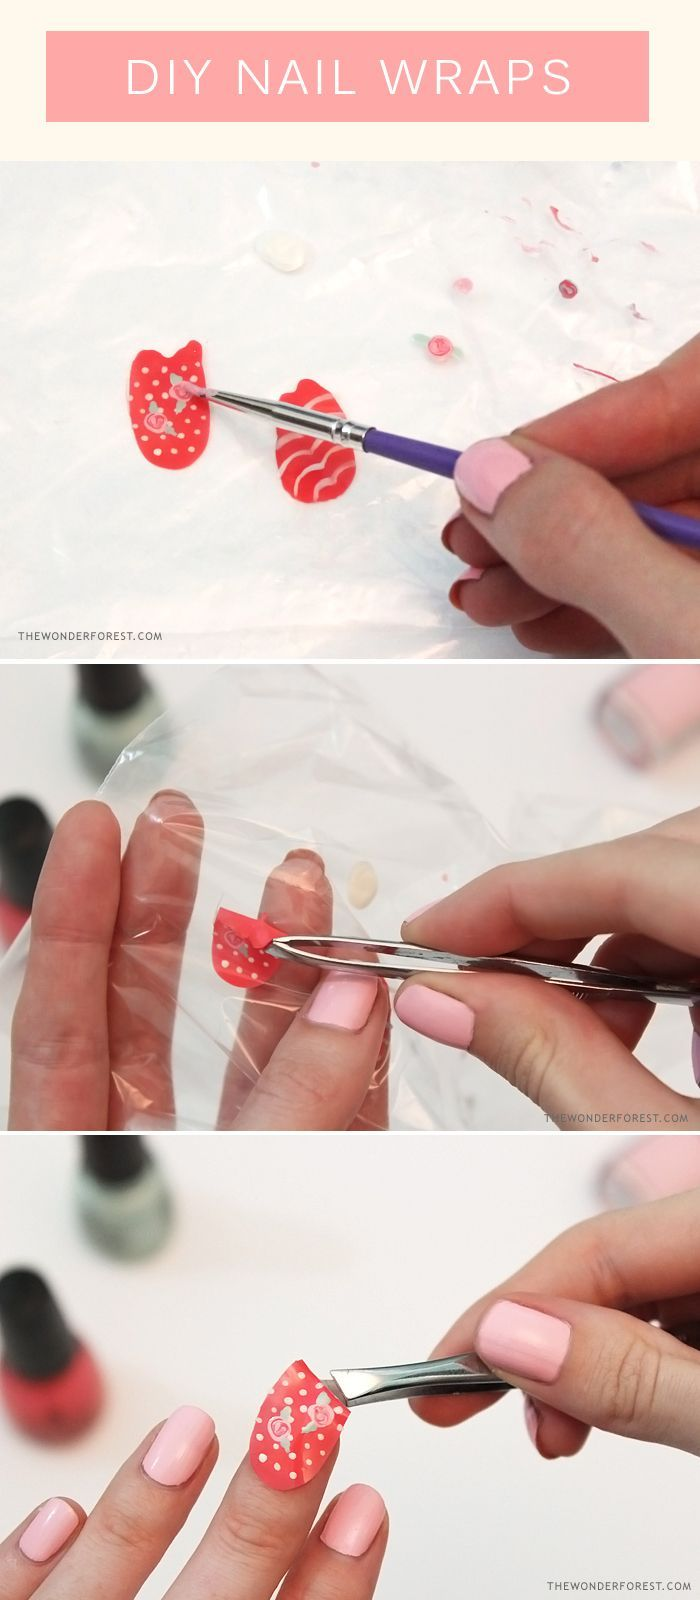 Make Your Own Nail Wraps | Wonder Forest: Design Your Life ...